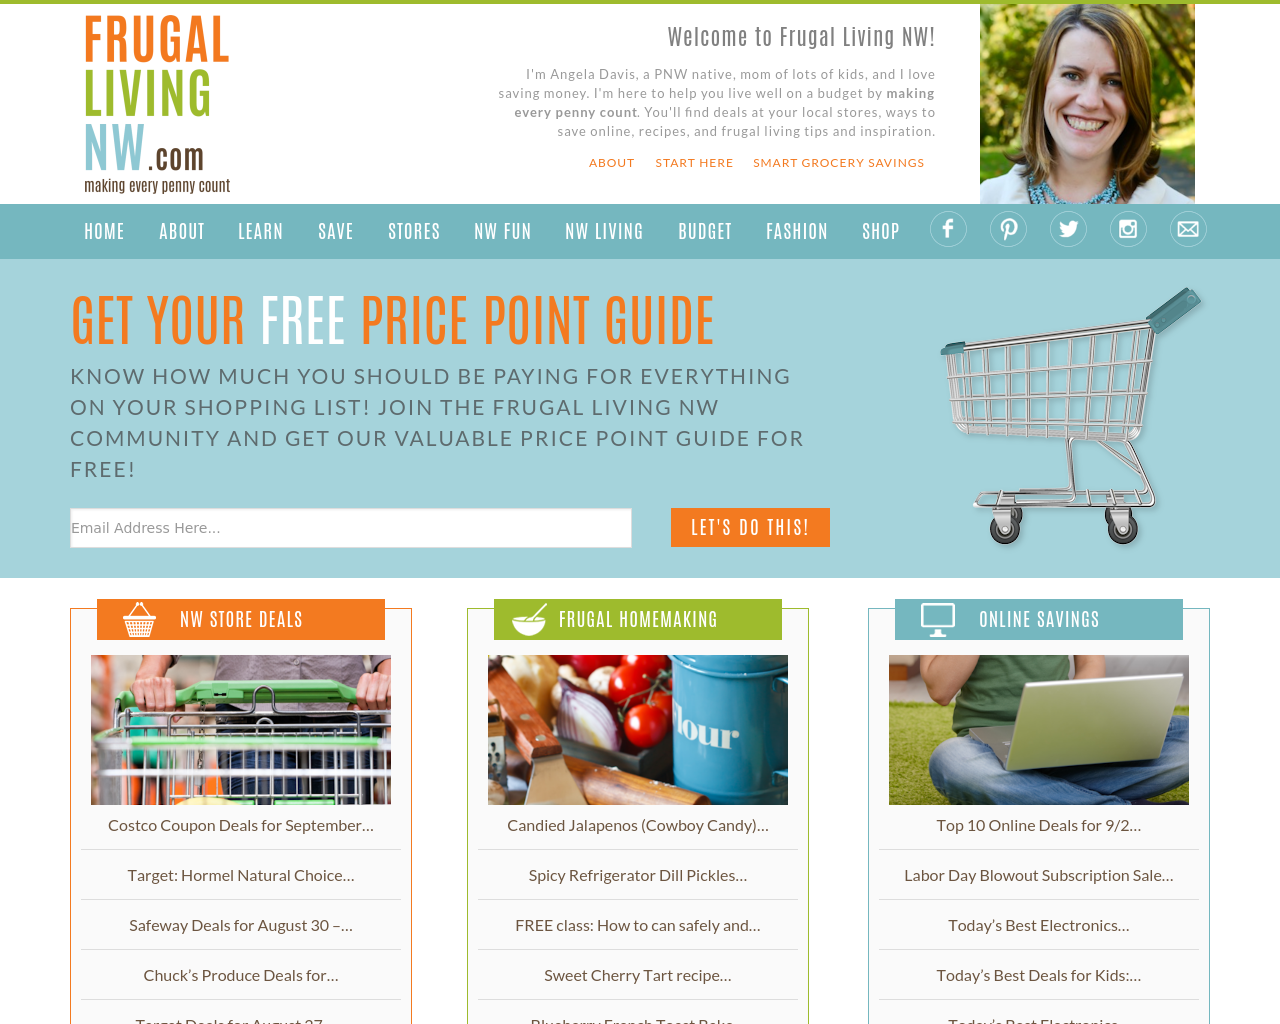 Frugal-Living-NW-Advertising-Reviews-Pricing